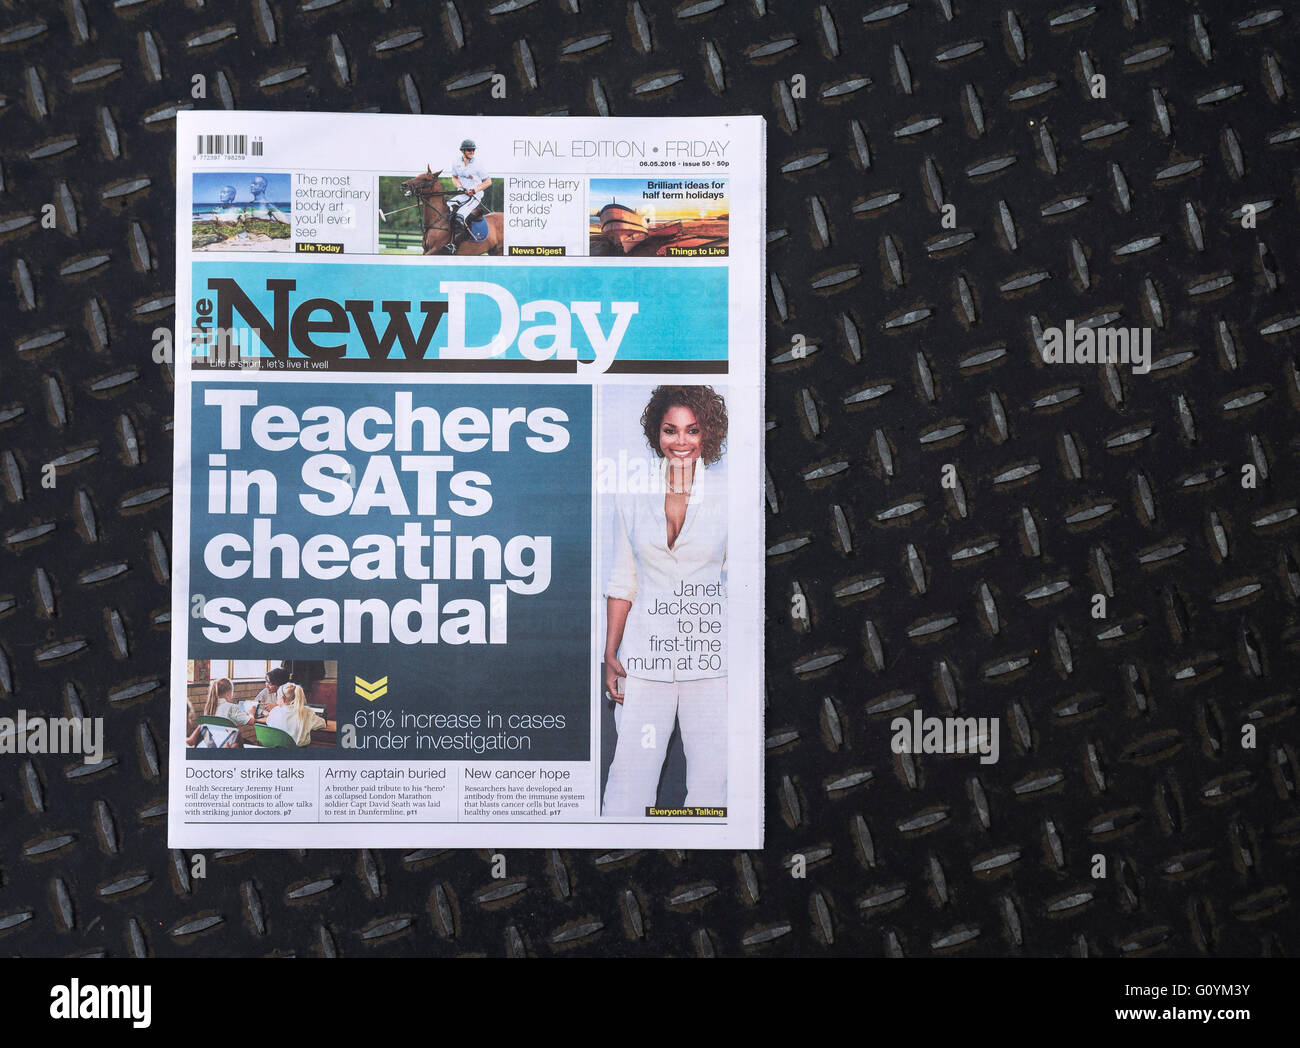 Final edition of The New Day newspaper, last (6th may 16) edition after just nine weeks. - Stock Image